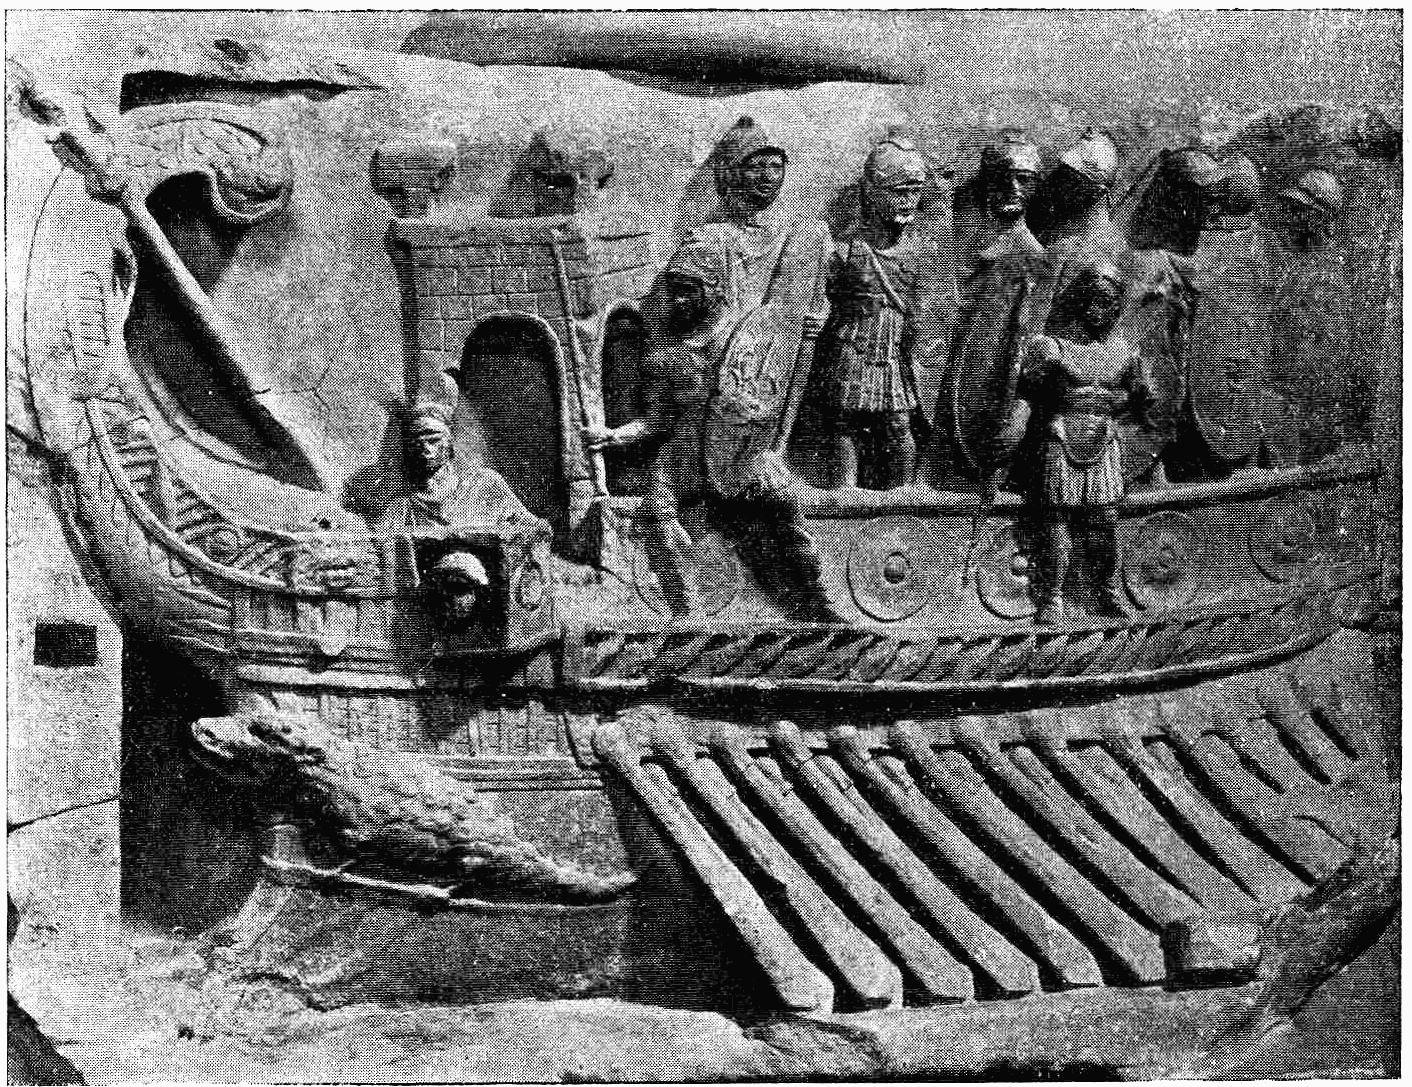 A Roman naval bireme depicted in a relief from the Temple of Fortuna Primigenia in Praeneste (Palastrina),[22] which was built c. 120 BC;[23] exhibited in the Pius-Clementine Museum (Museo Pio-Clementino) in the Vatican Museums.